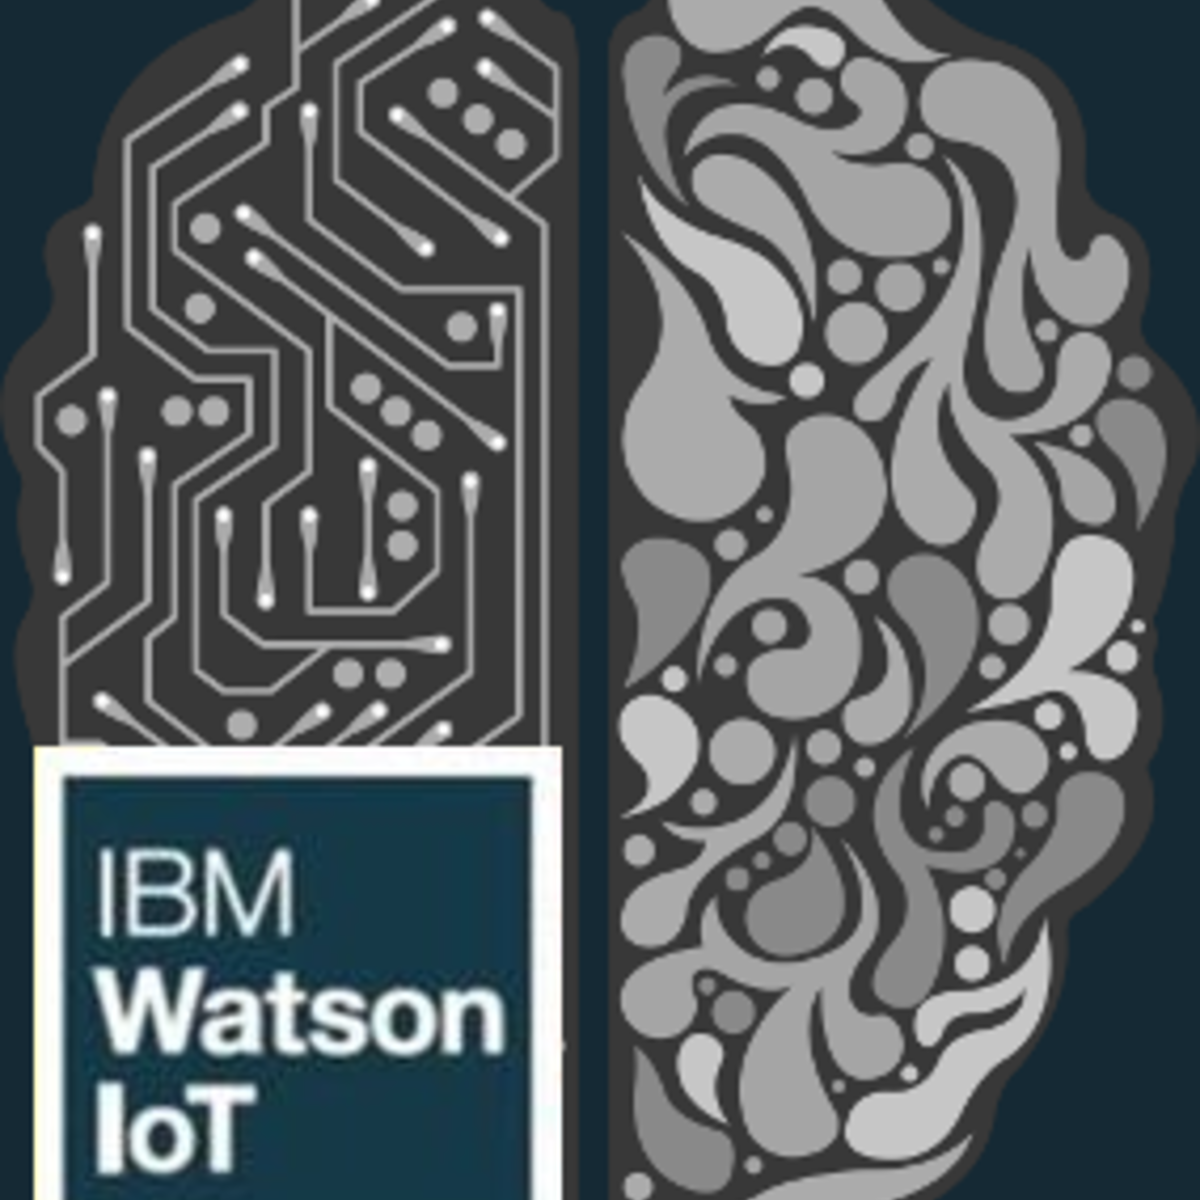 Applied AI with DeepLearning, IBM Watson IoT Data Science Certificate